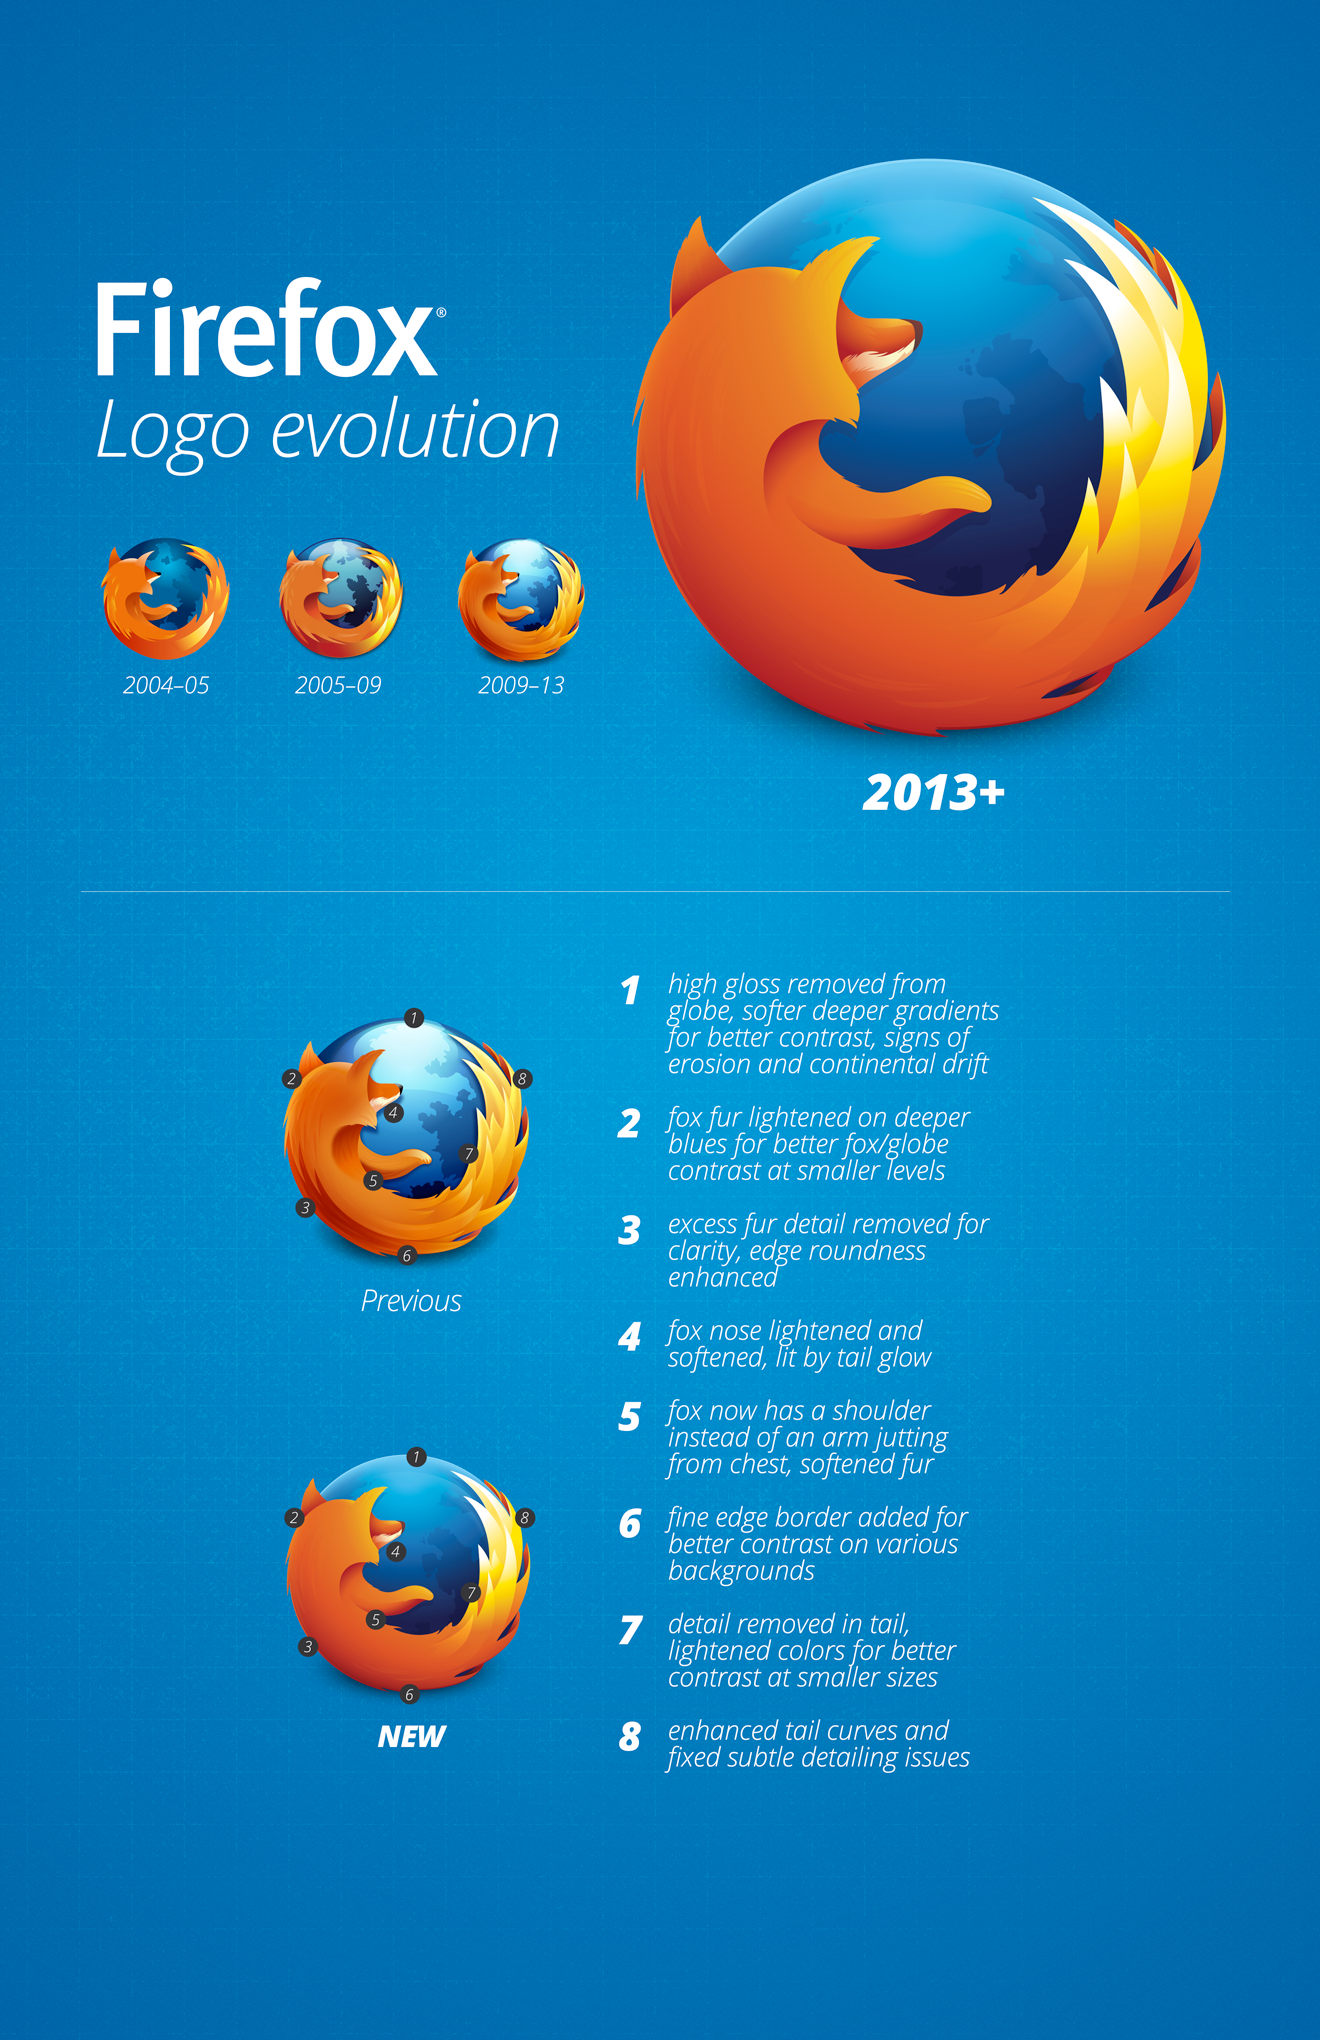 Poster for Firefox 2013 logo changes